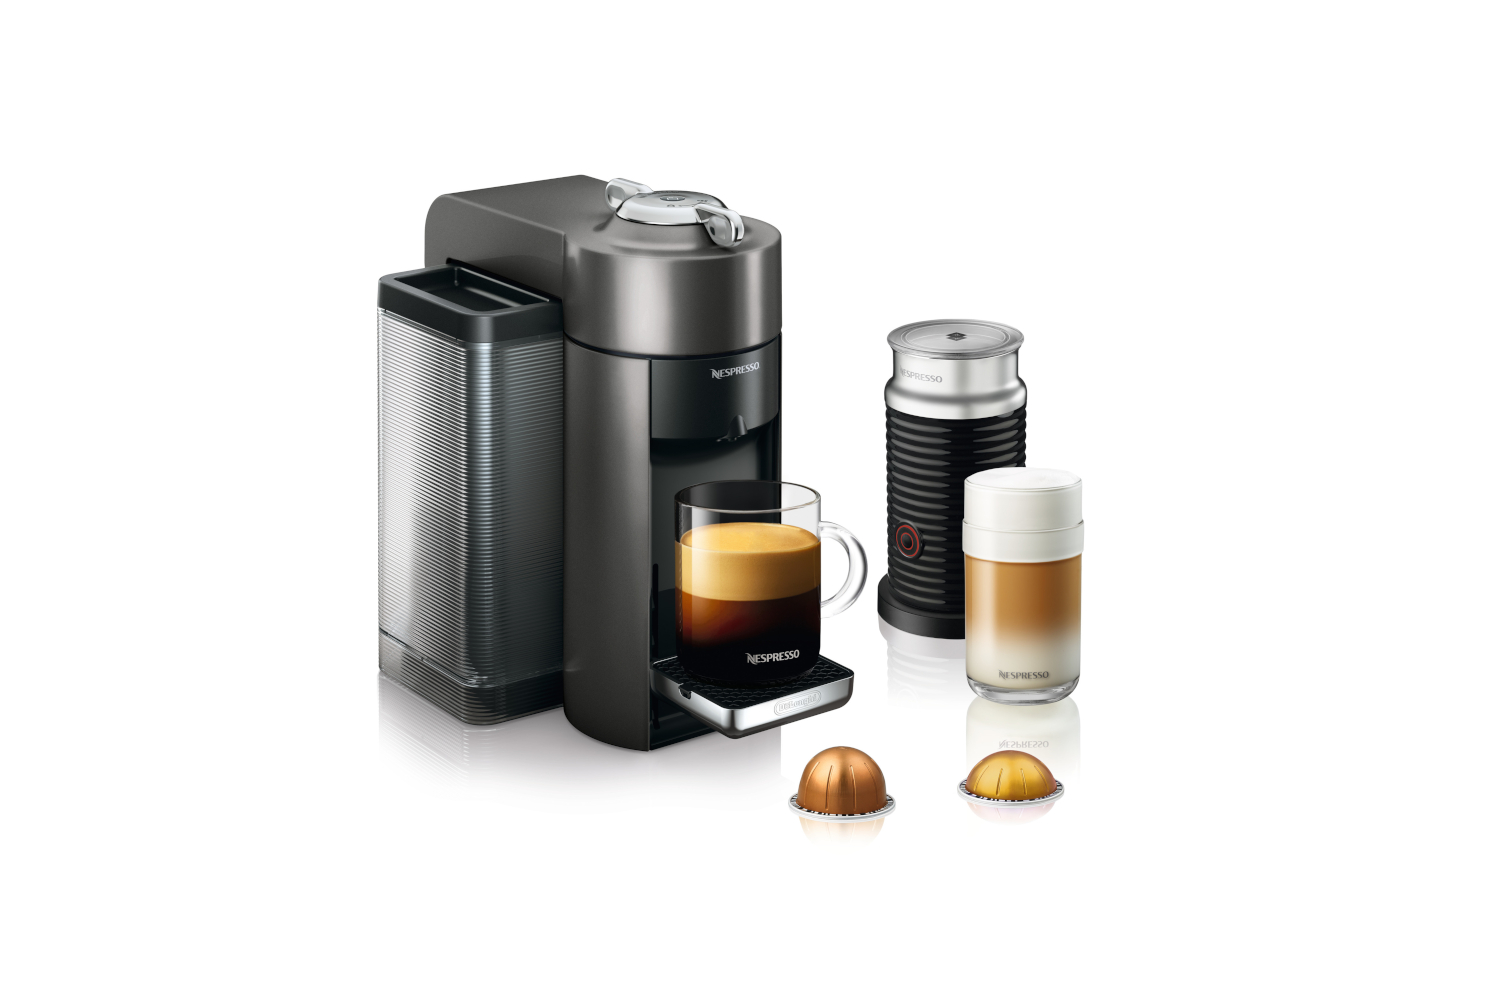 Nespresso Vertuo Coffee & Espresso Machine by De'Longhi w/Aeroccino3 - Graphite Metal